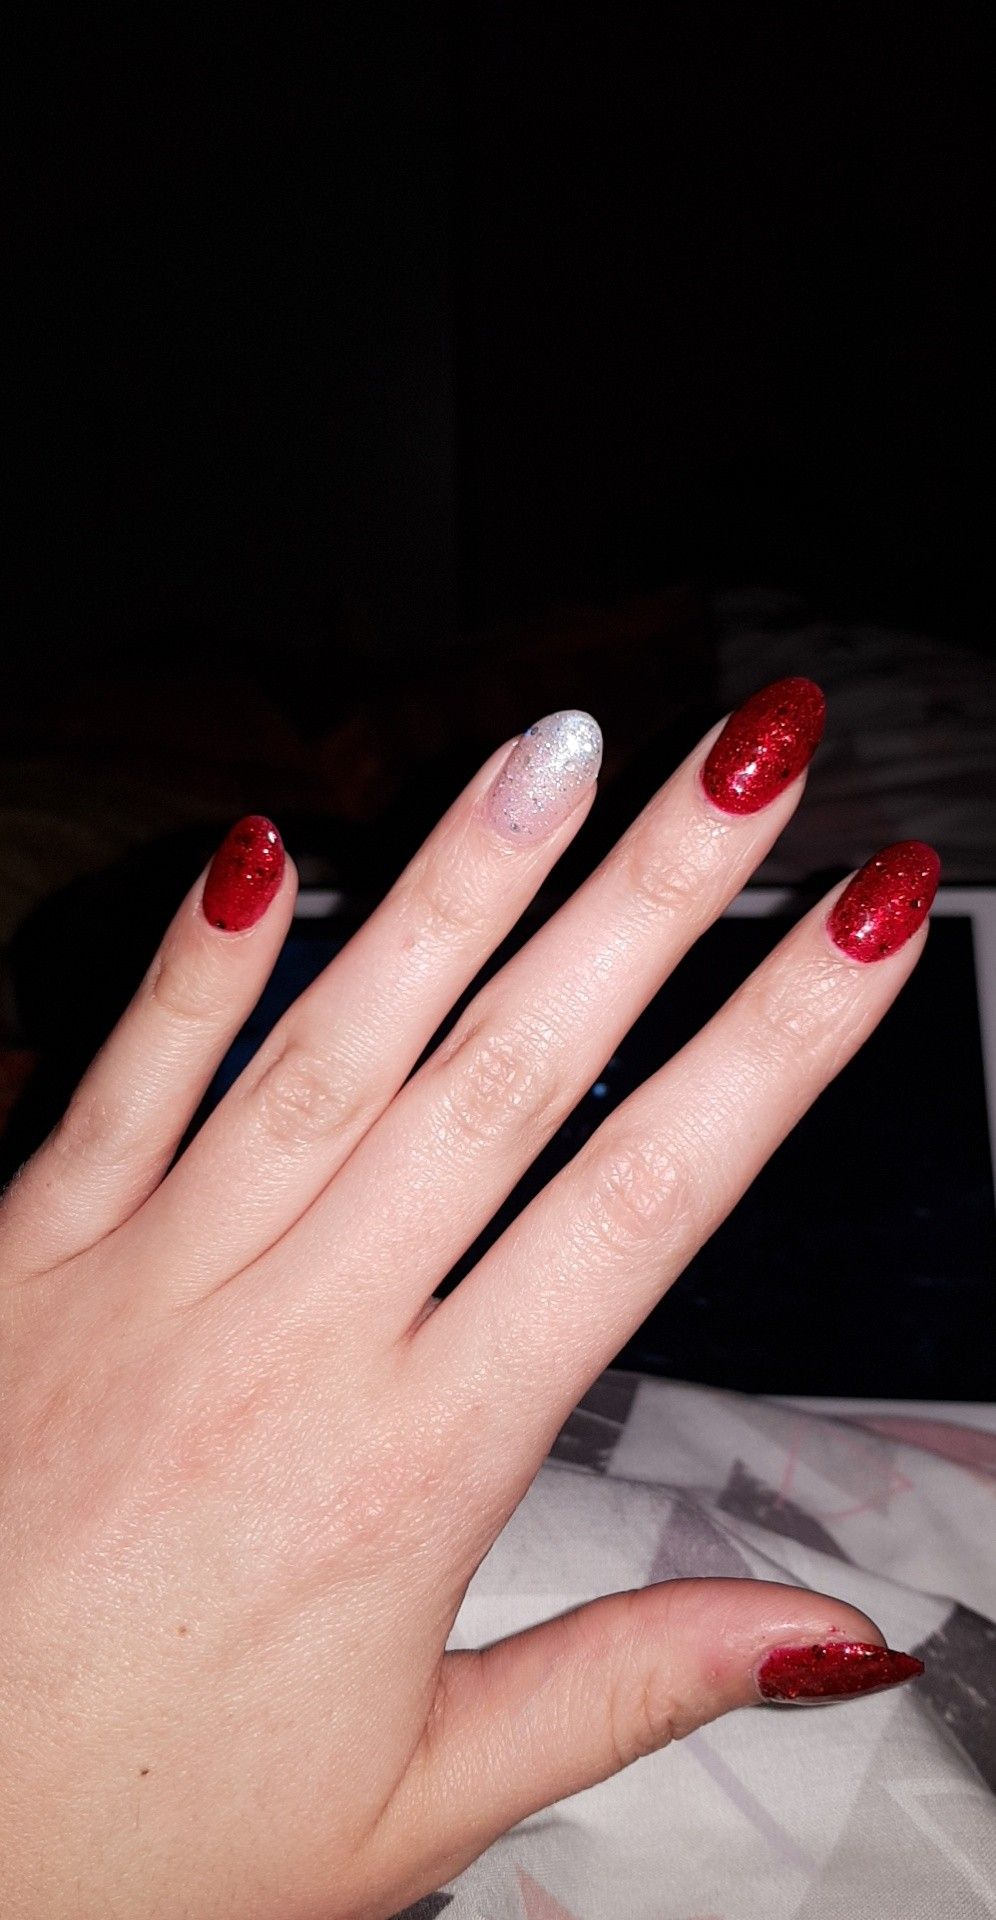 acrylic shellac nails red white glitter sparkle